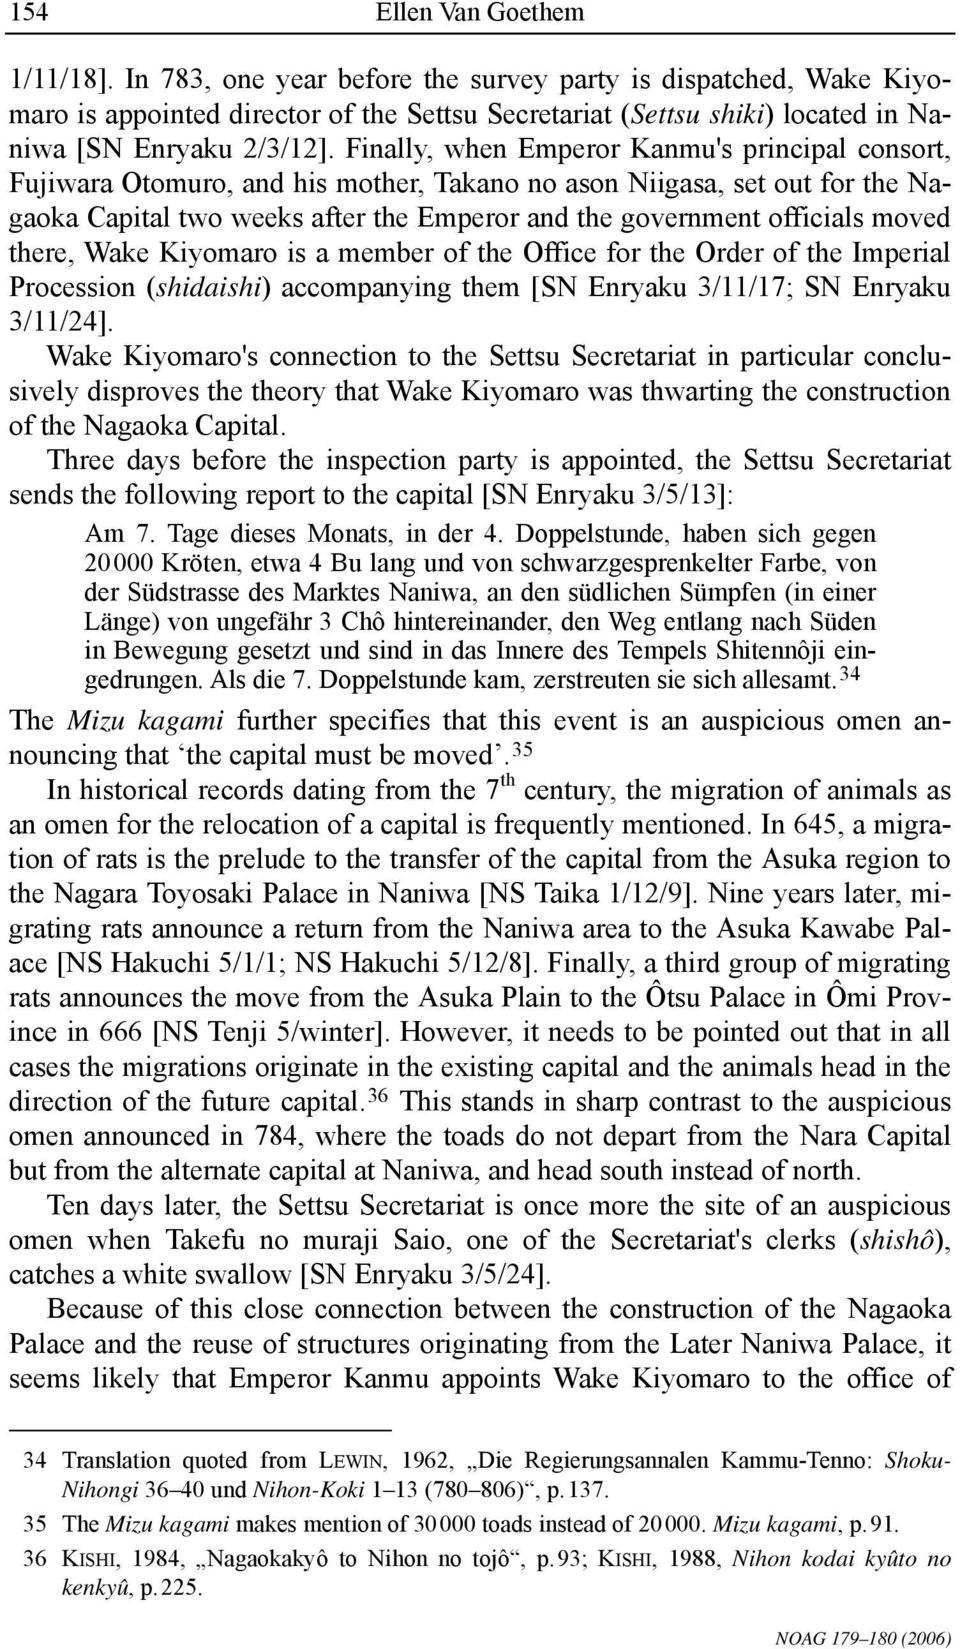 Finally, when Emperor Kanmu's principal consort, Fujiwara Otomuro, and his mother, Takano no ason Niigasa, set out for the Nagaoka Capital two weeks after the Emperor and the government officials